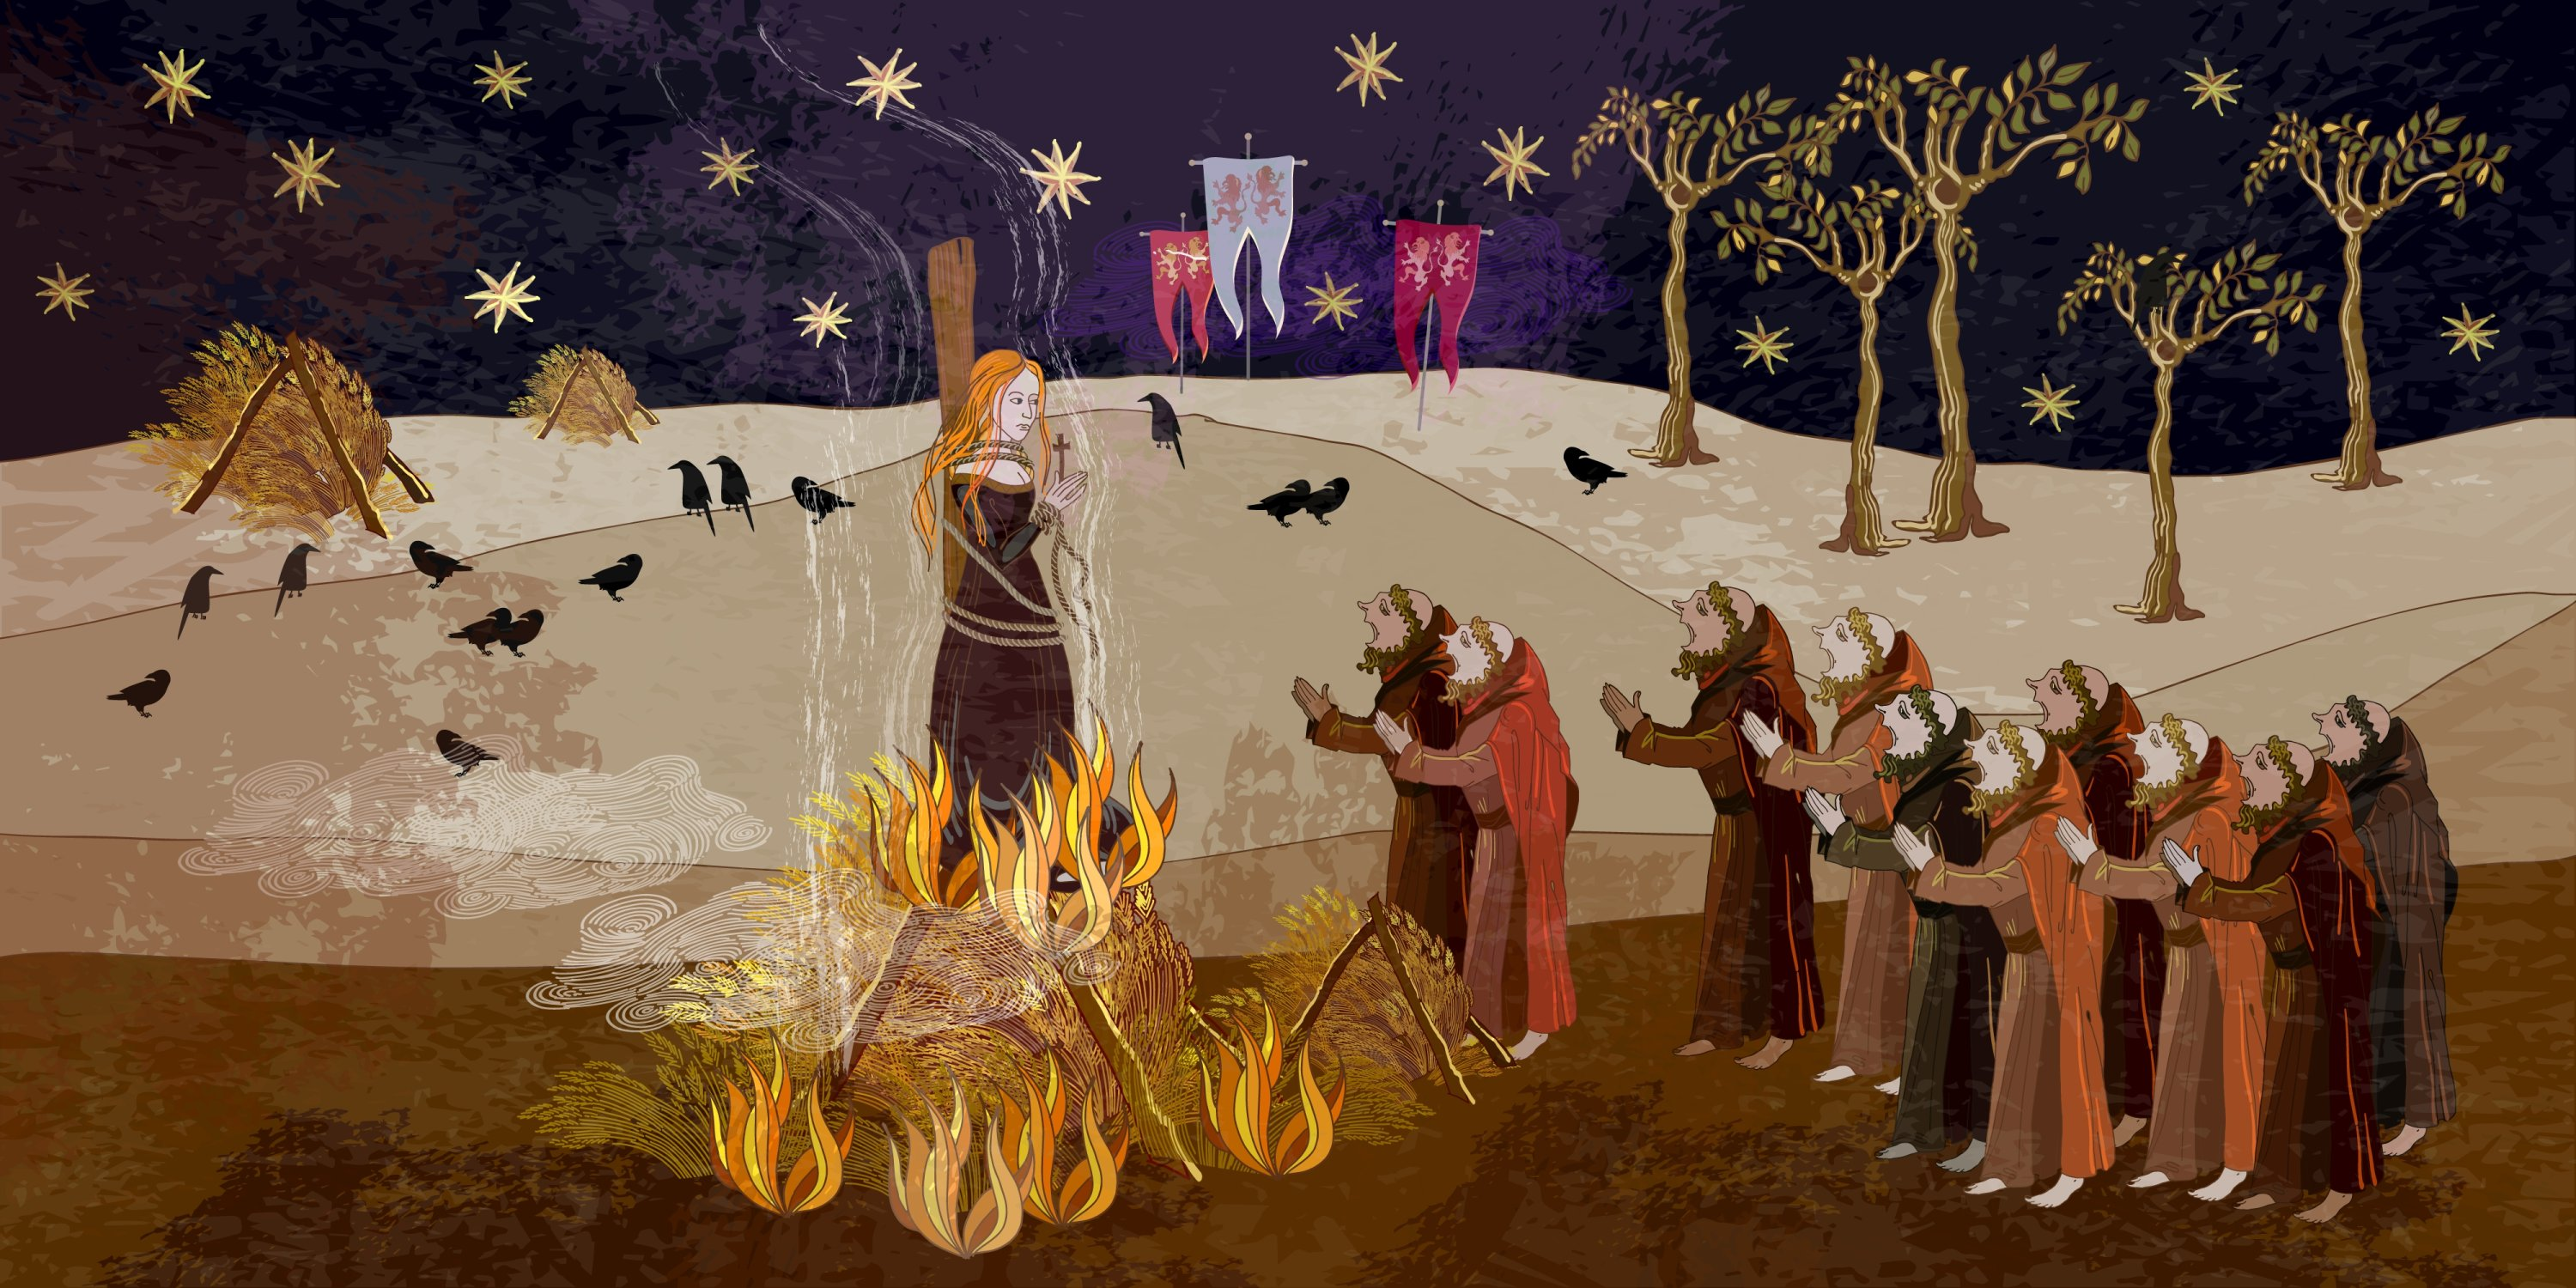 An artist's illustration of the burning of the witches in the Middle Ages, parchment style. (Shutterstock Photo)